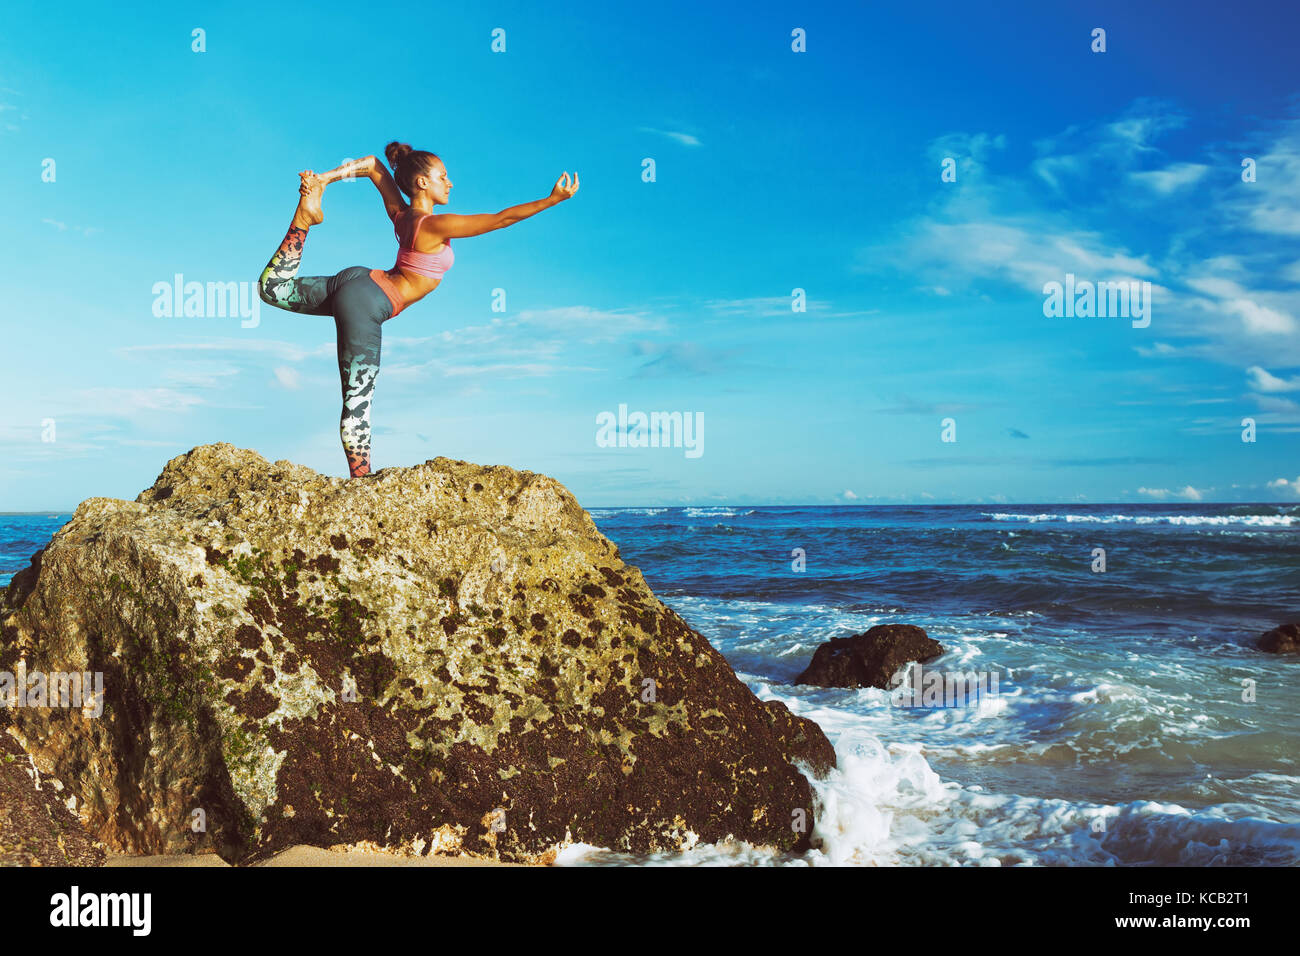 Meditation on sunset sky background. Young active woman stand in yoga pose on beach rock to keep fit and health. - Stock Image